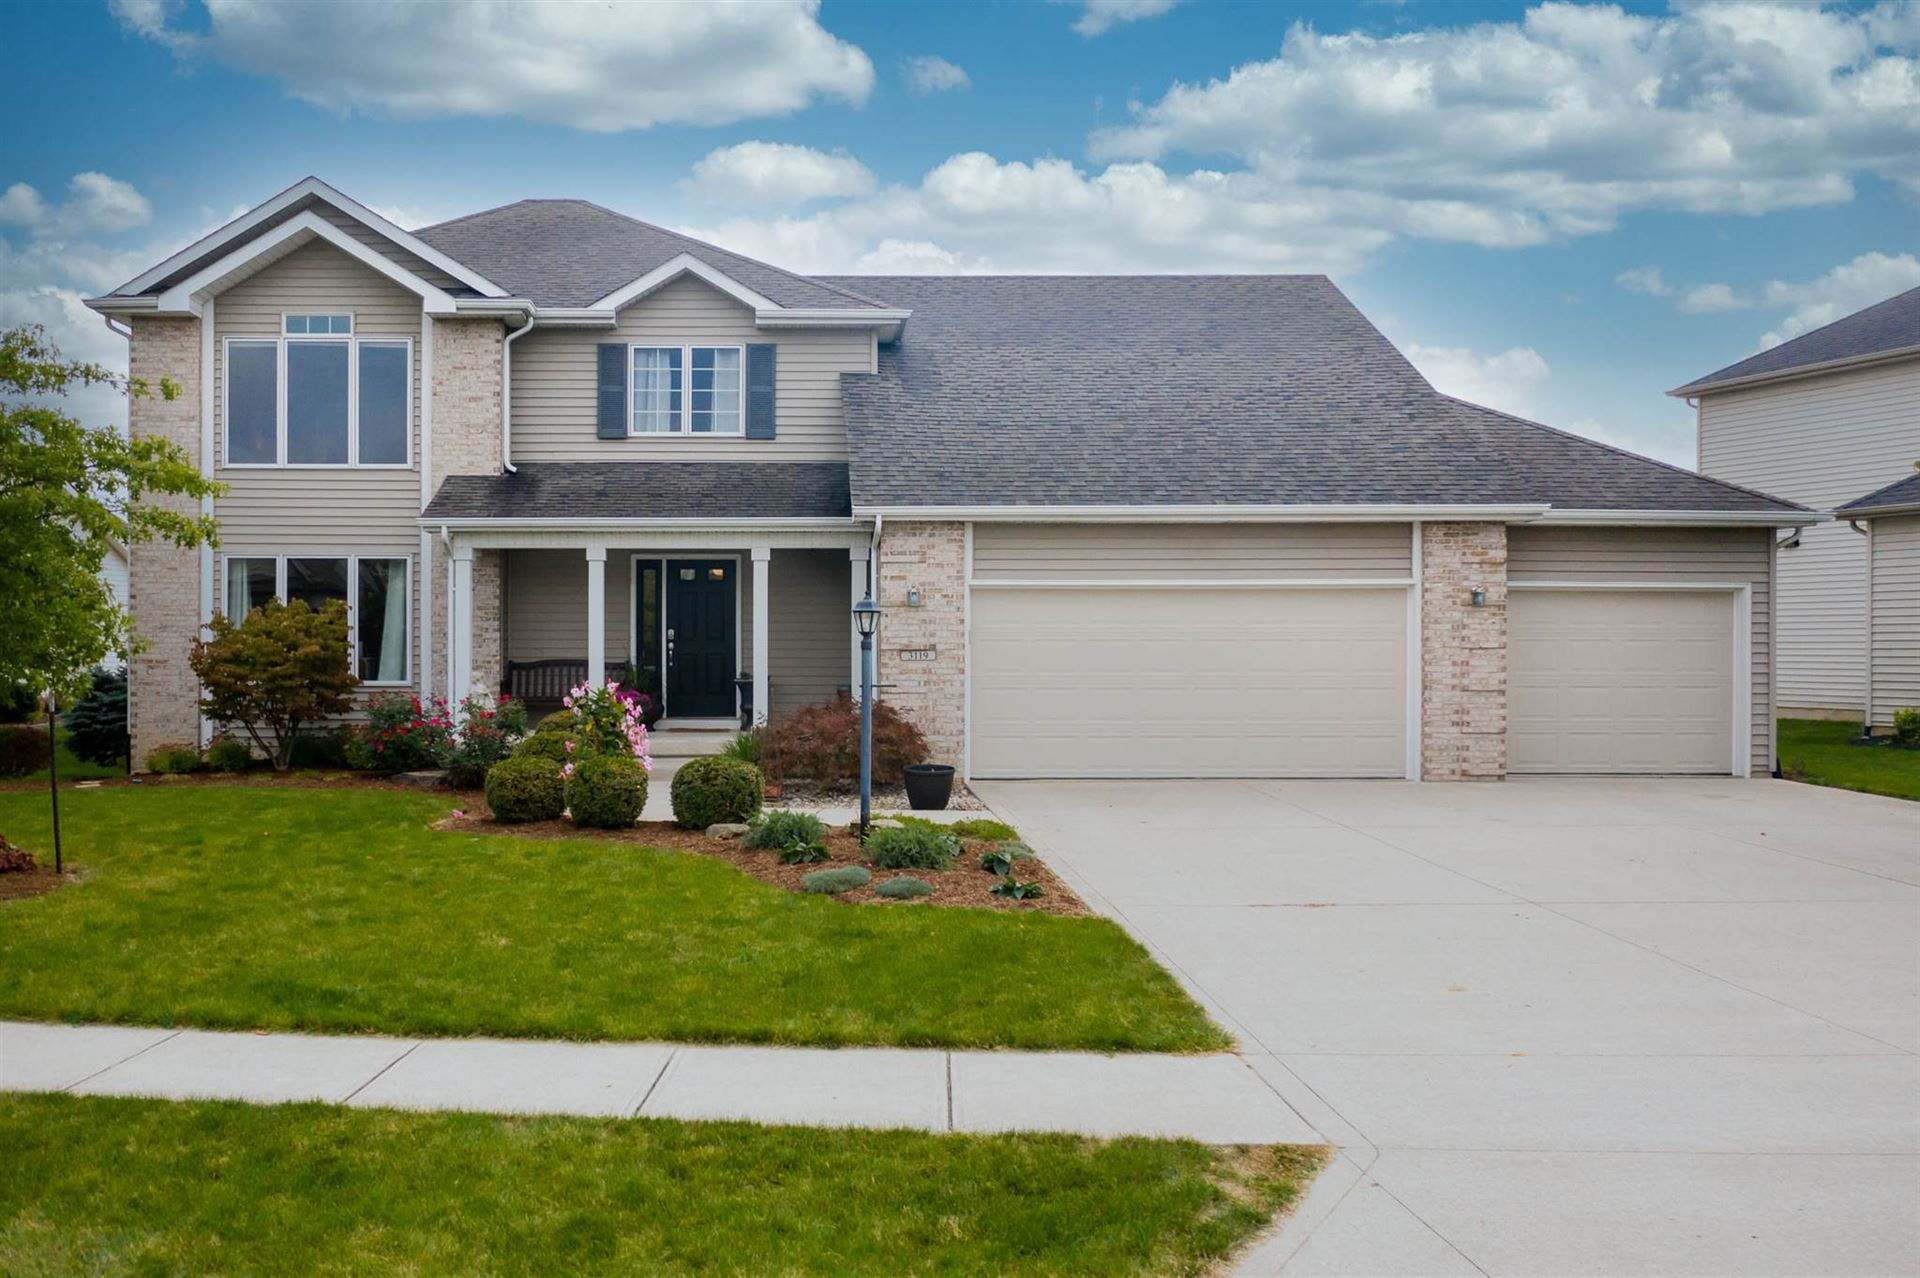 3119 Shallowbrook Drive, Fort Wayne, IN 46814 - #: 202039060